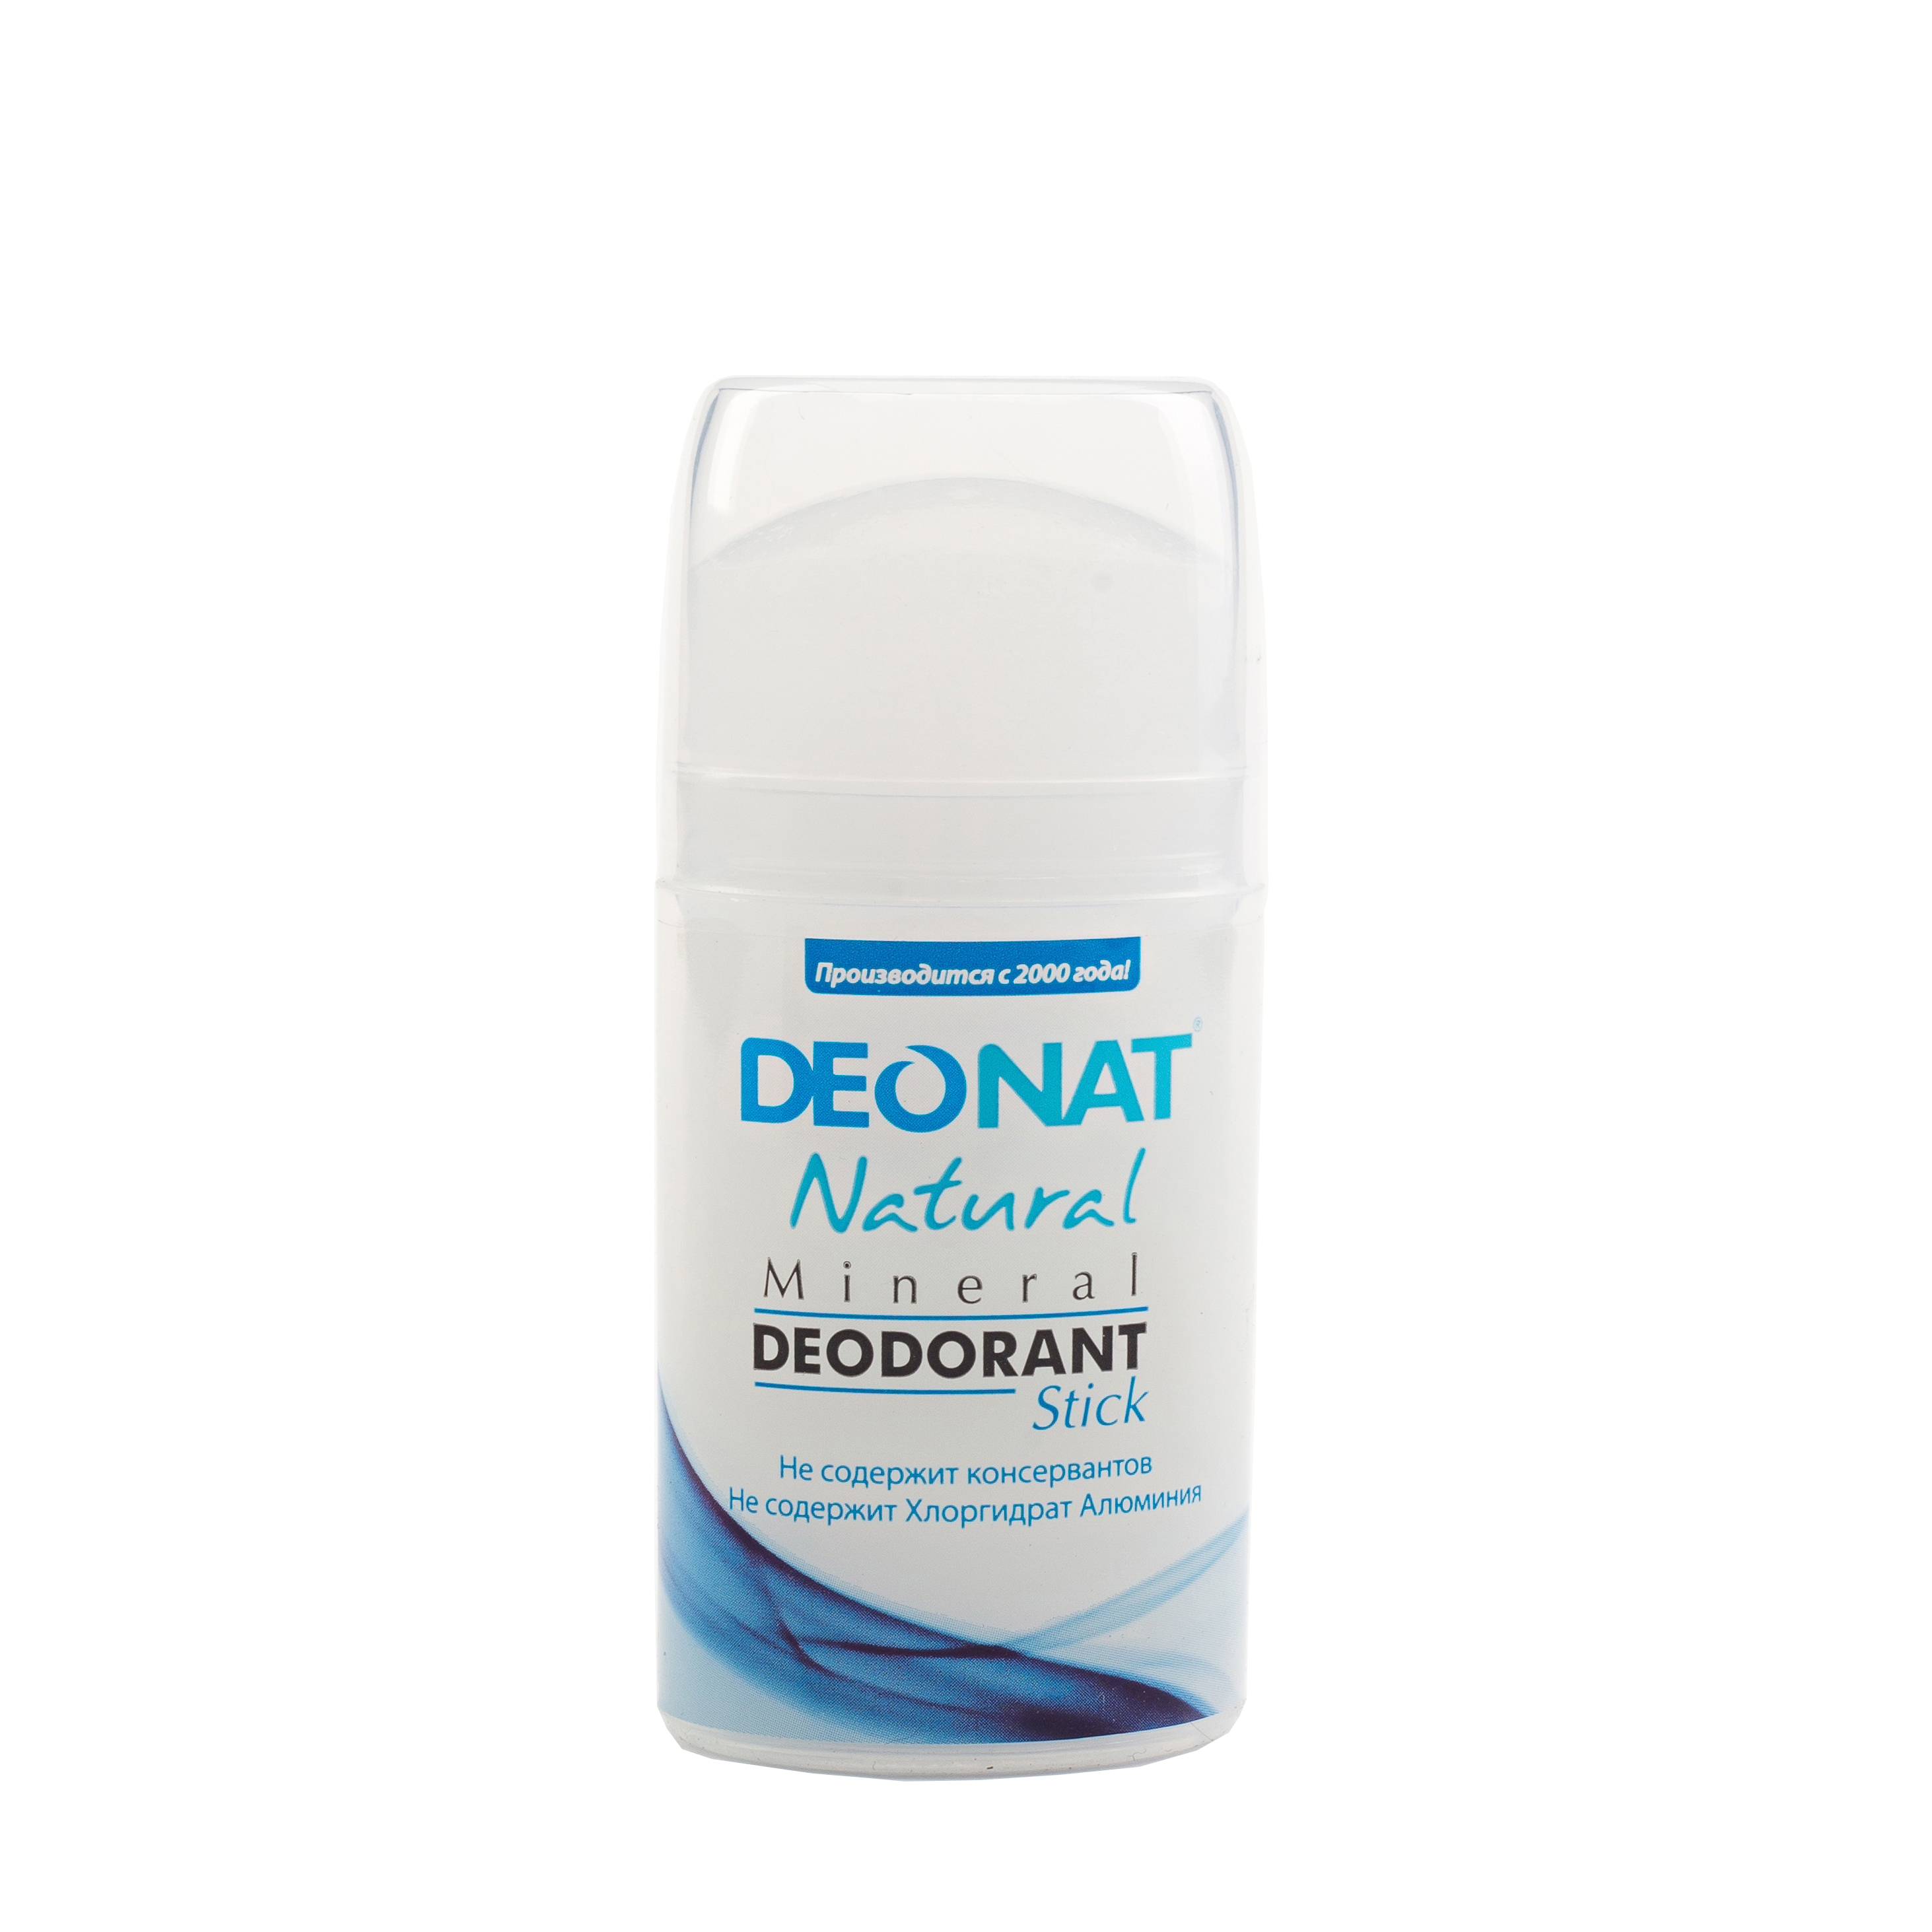 Deodorant PNG images free download.